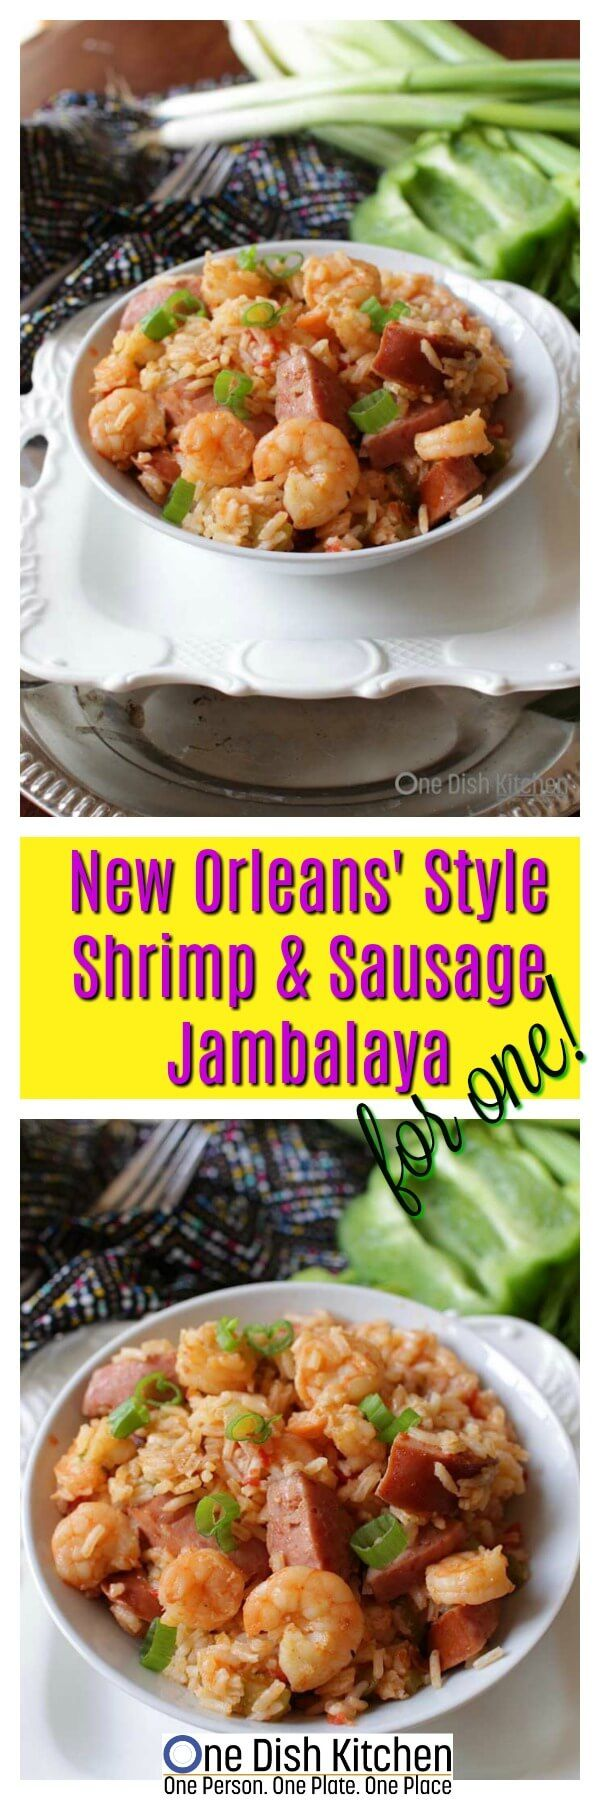 """Authentic Louisiana-style Shrimp and Sausage Jambalaya For One. A flavorful single serving recipe that can be ready in 30 minutes! Made with the """"trinity"""" of vegetables, this traditional New Orleans jambalaya recipe will surely become a favorite! 